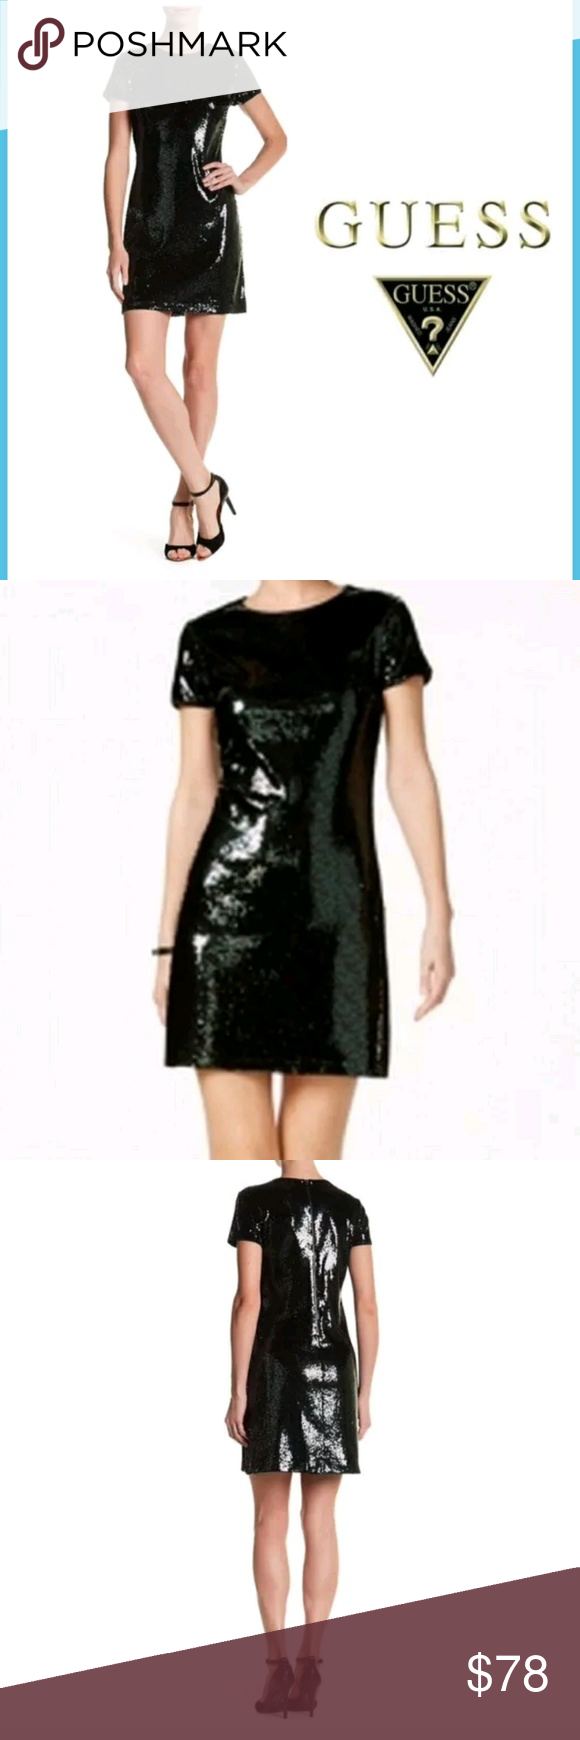 NWT Guess Sequins Short Sleeve Cocktail Dress. NWT | Guess dress ...